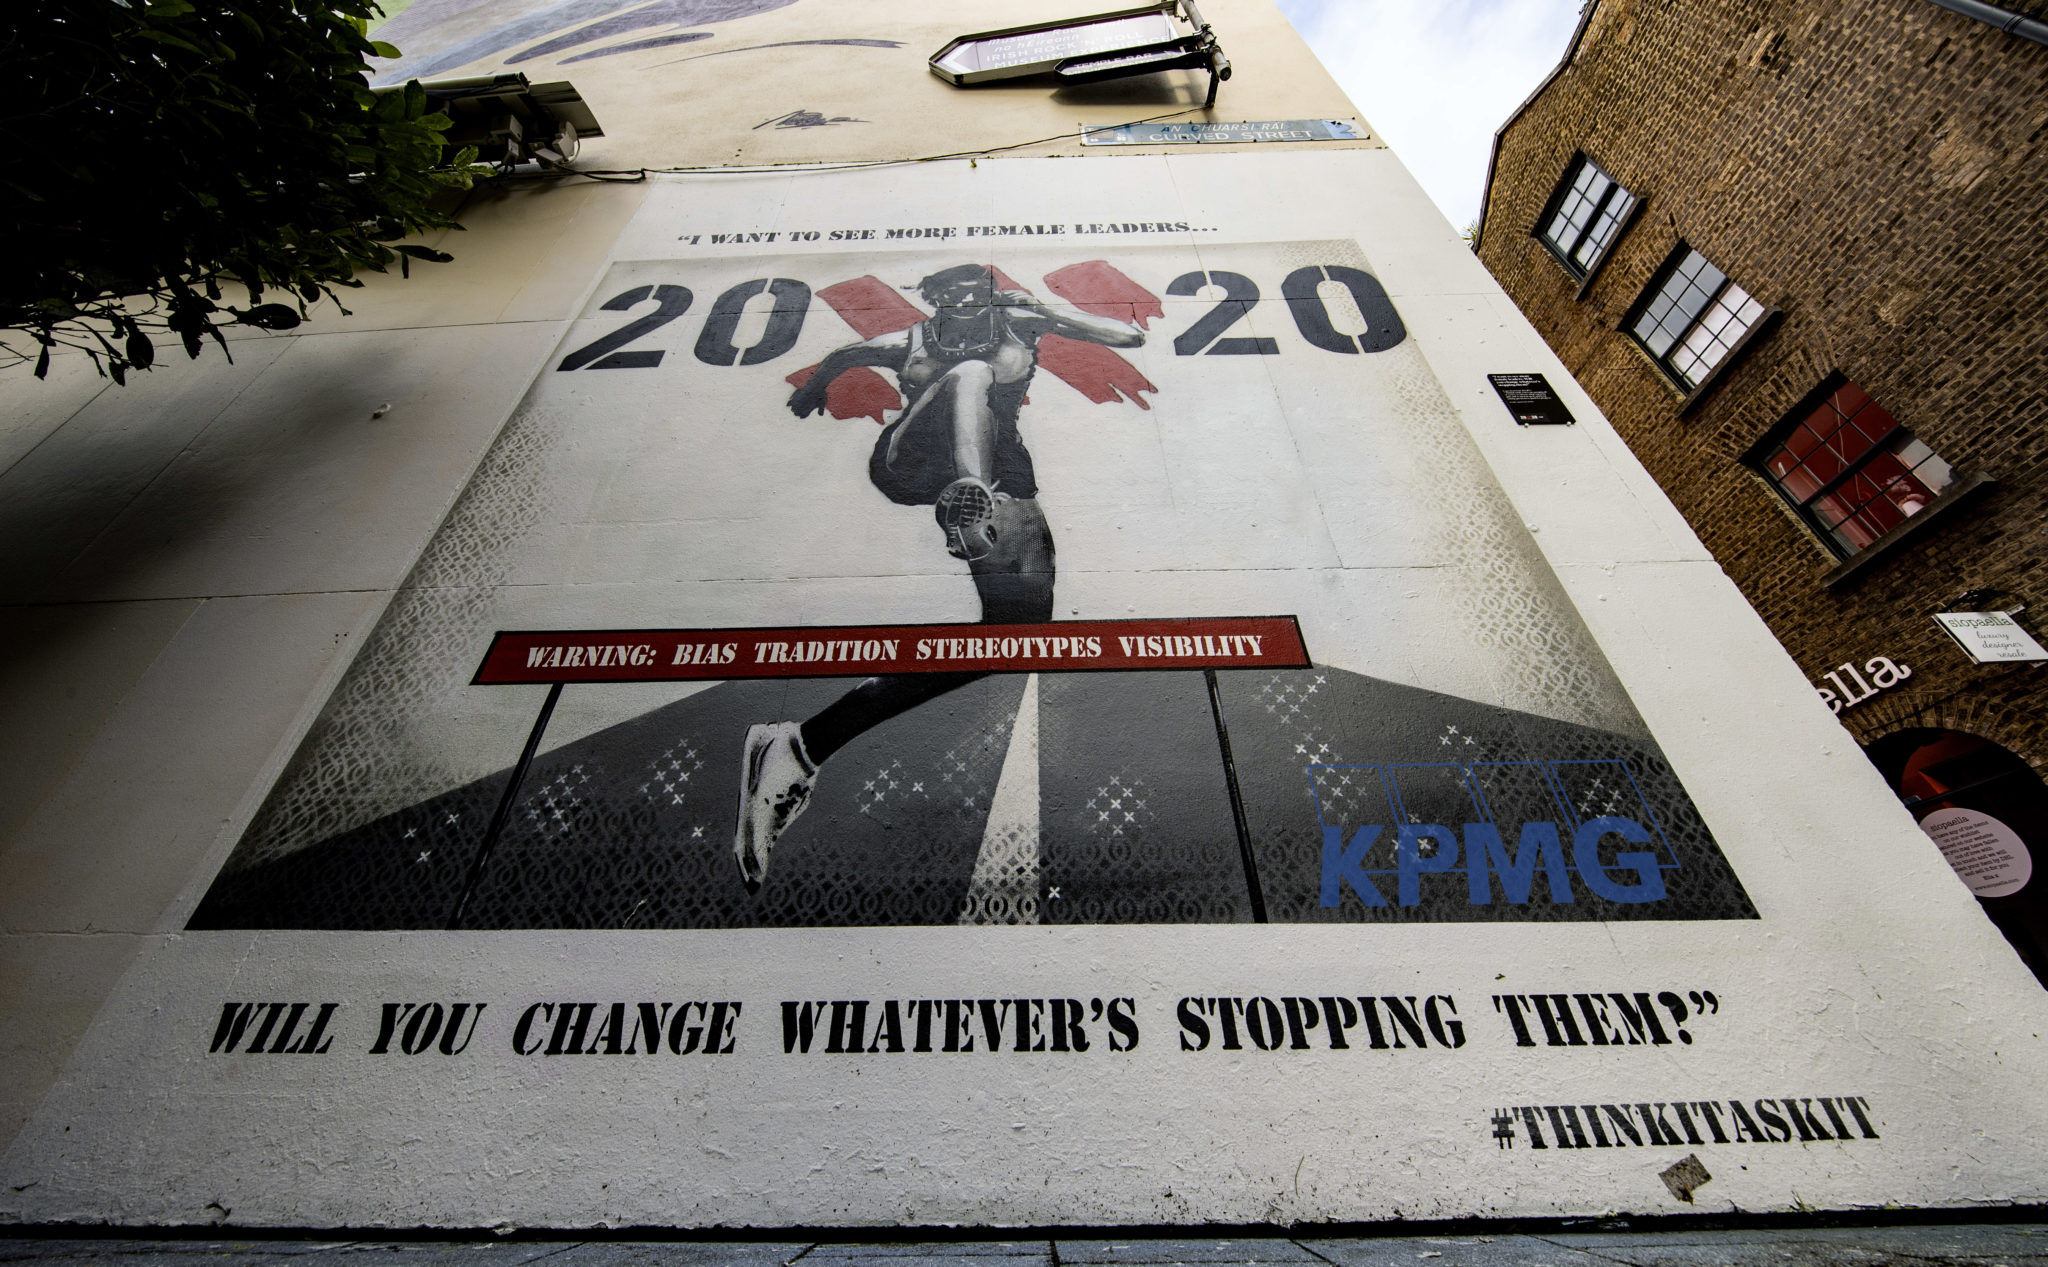 The 20x20 campaign created two murals, one of which resides in Curved Street, Temple Bar